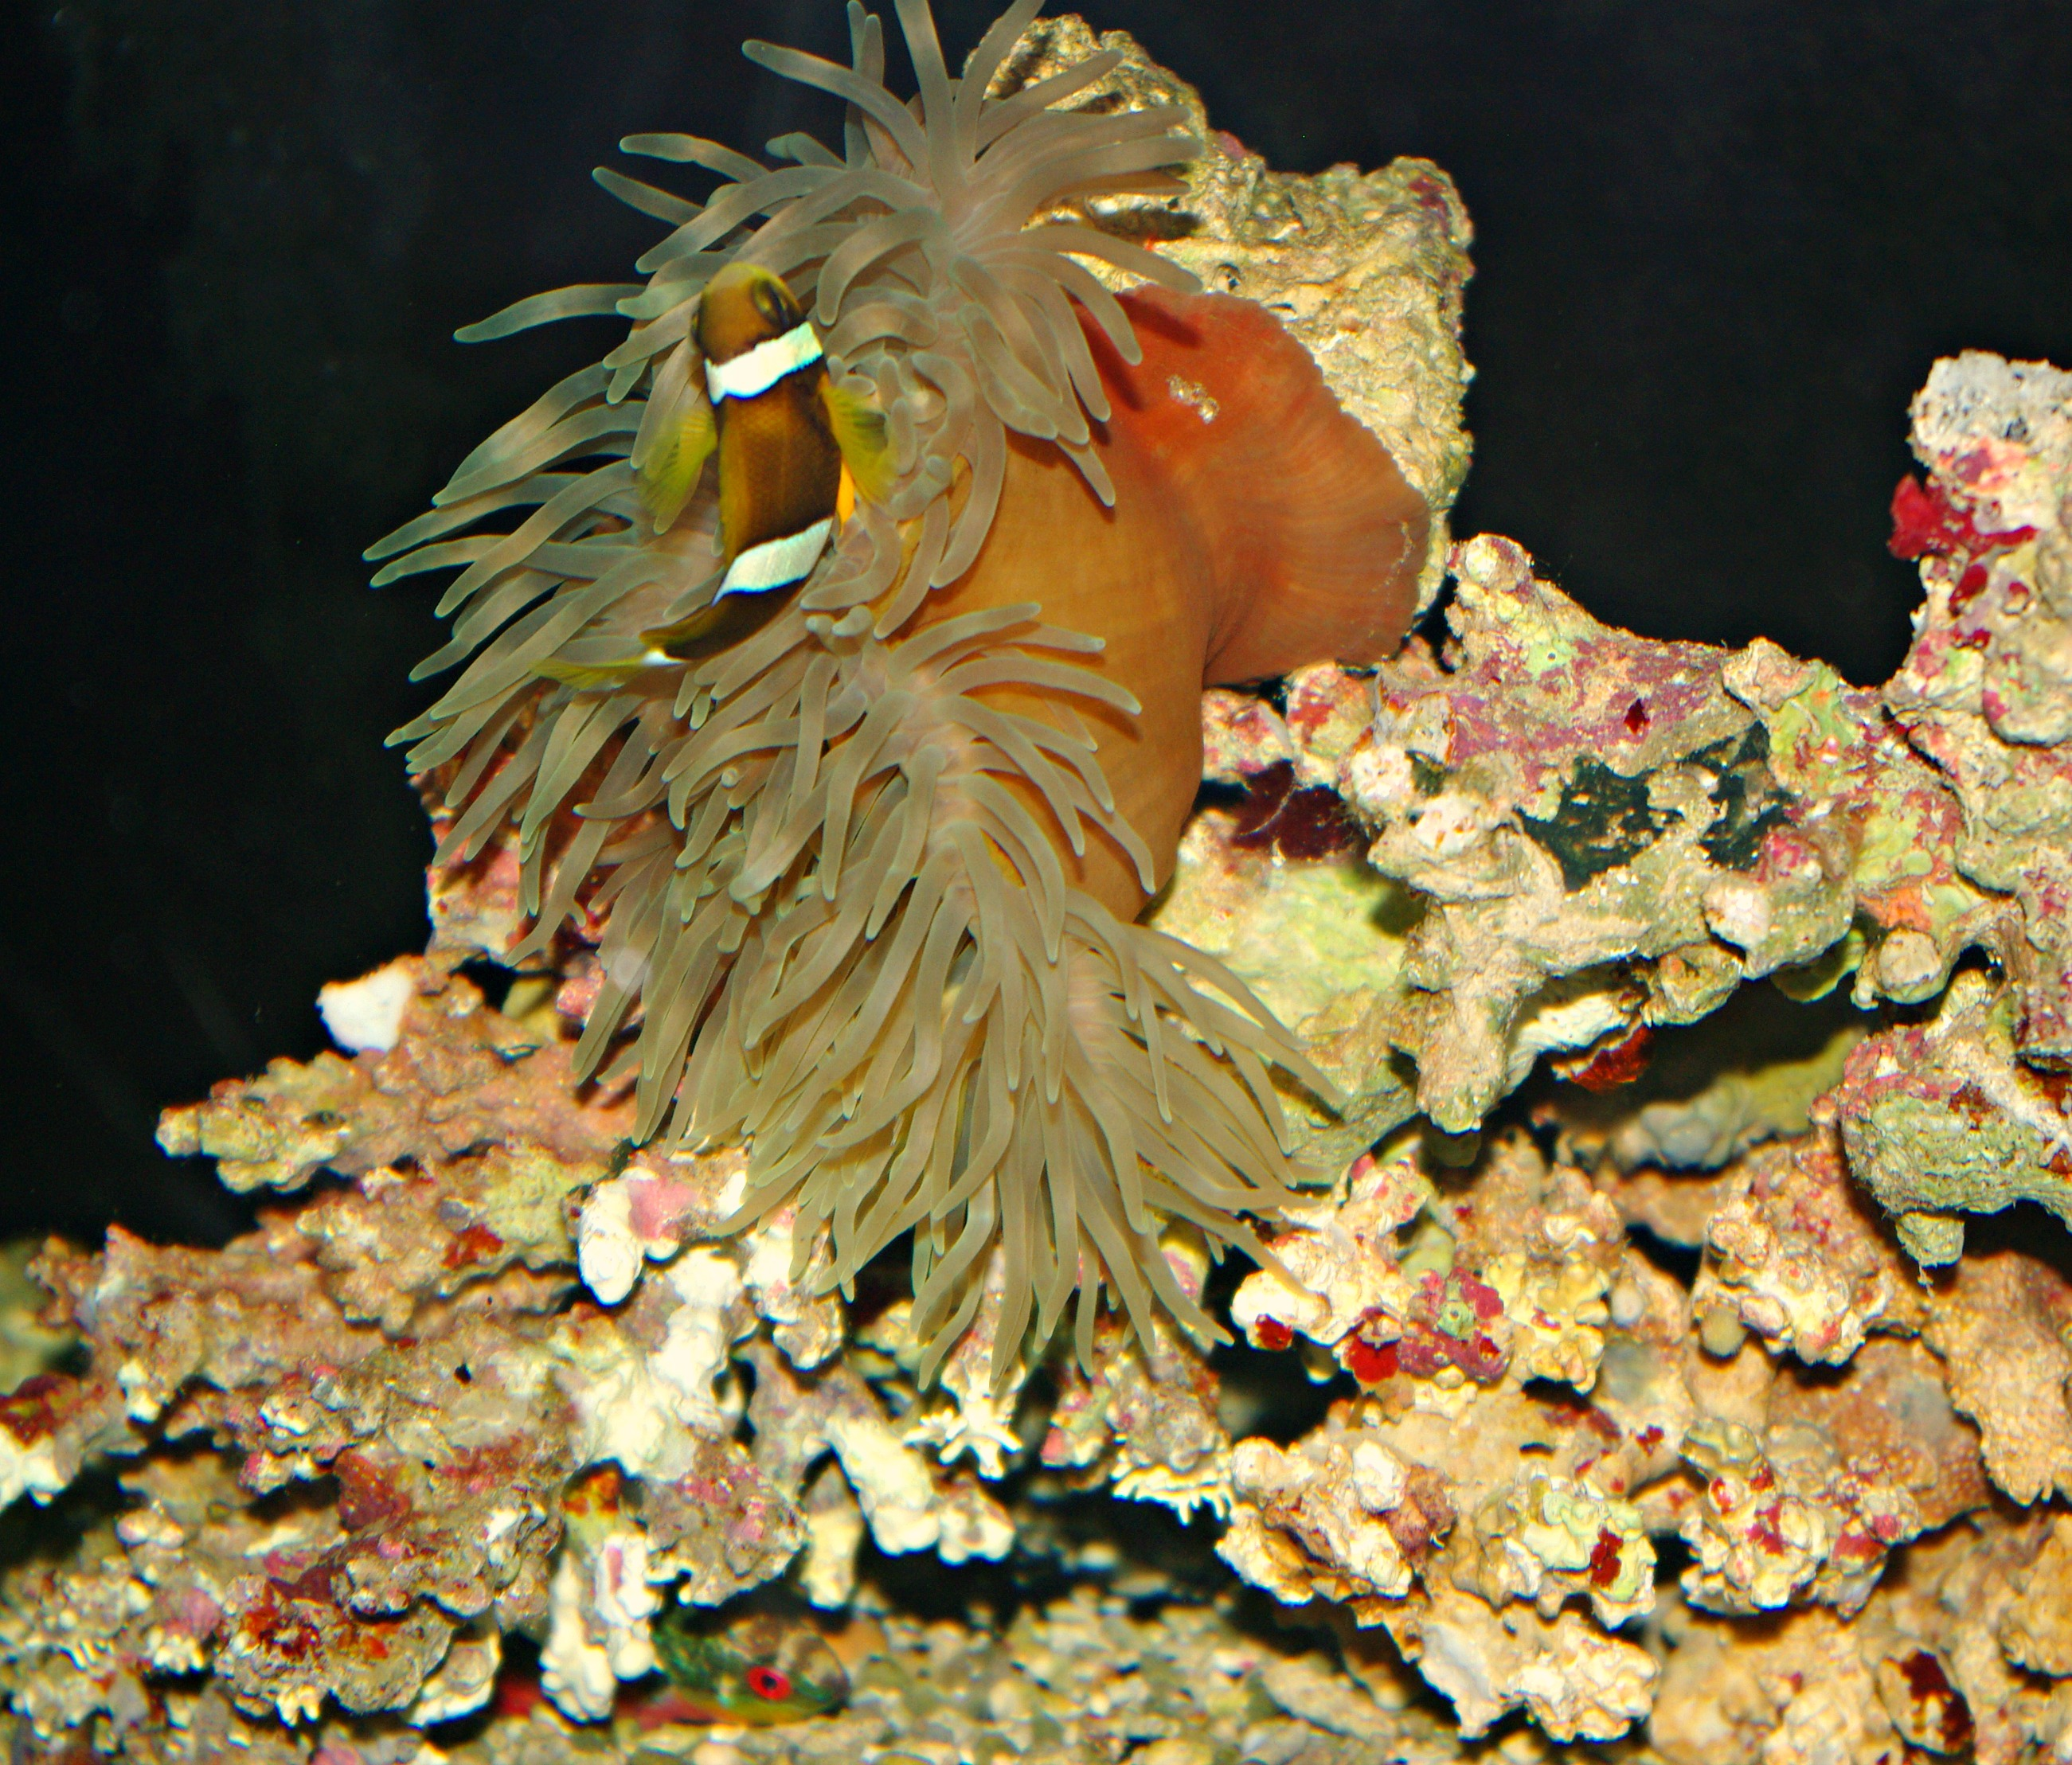 clarkies-clowns-in-anemone-by-night.jpg